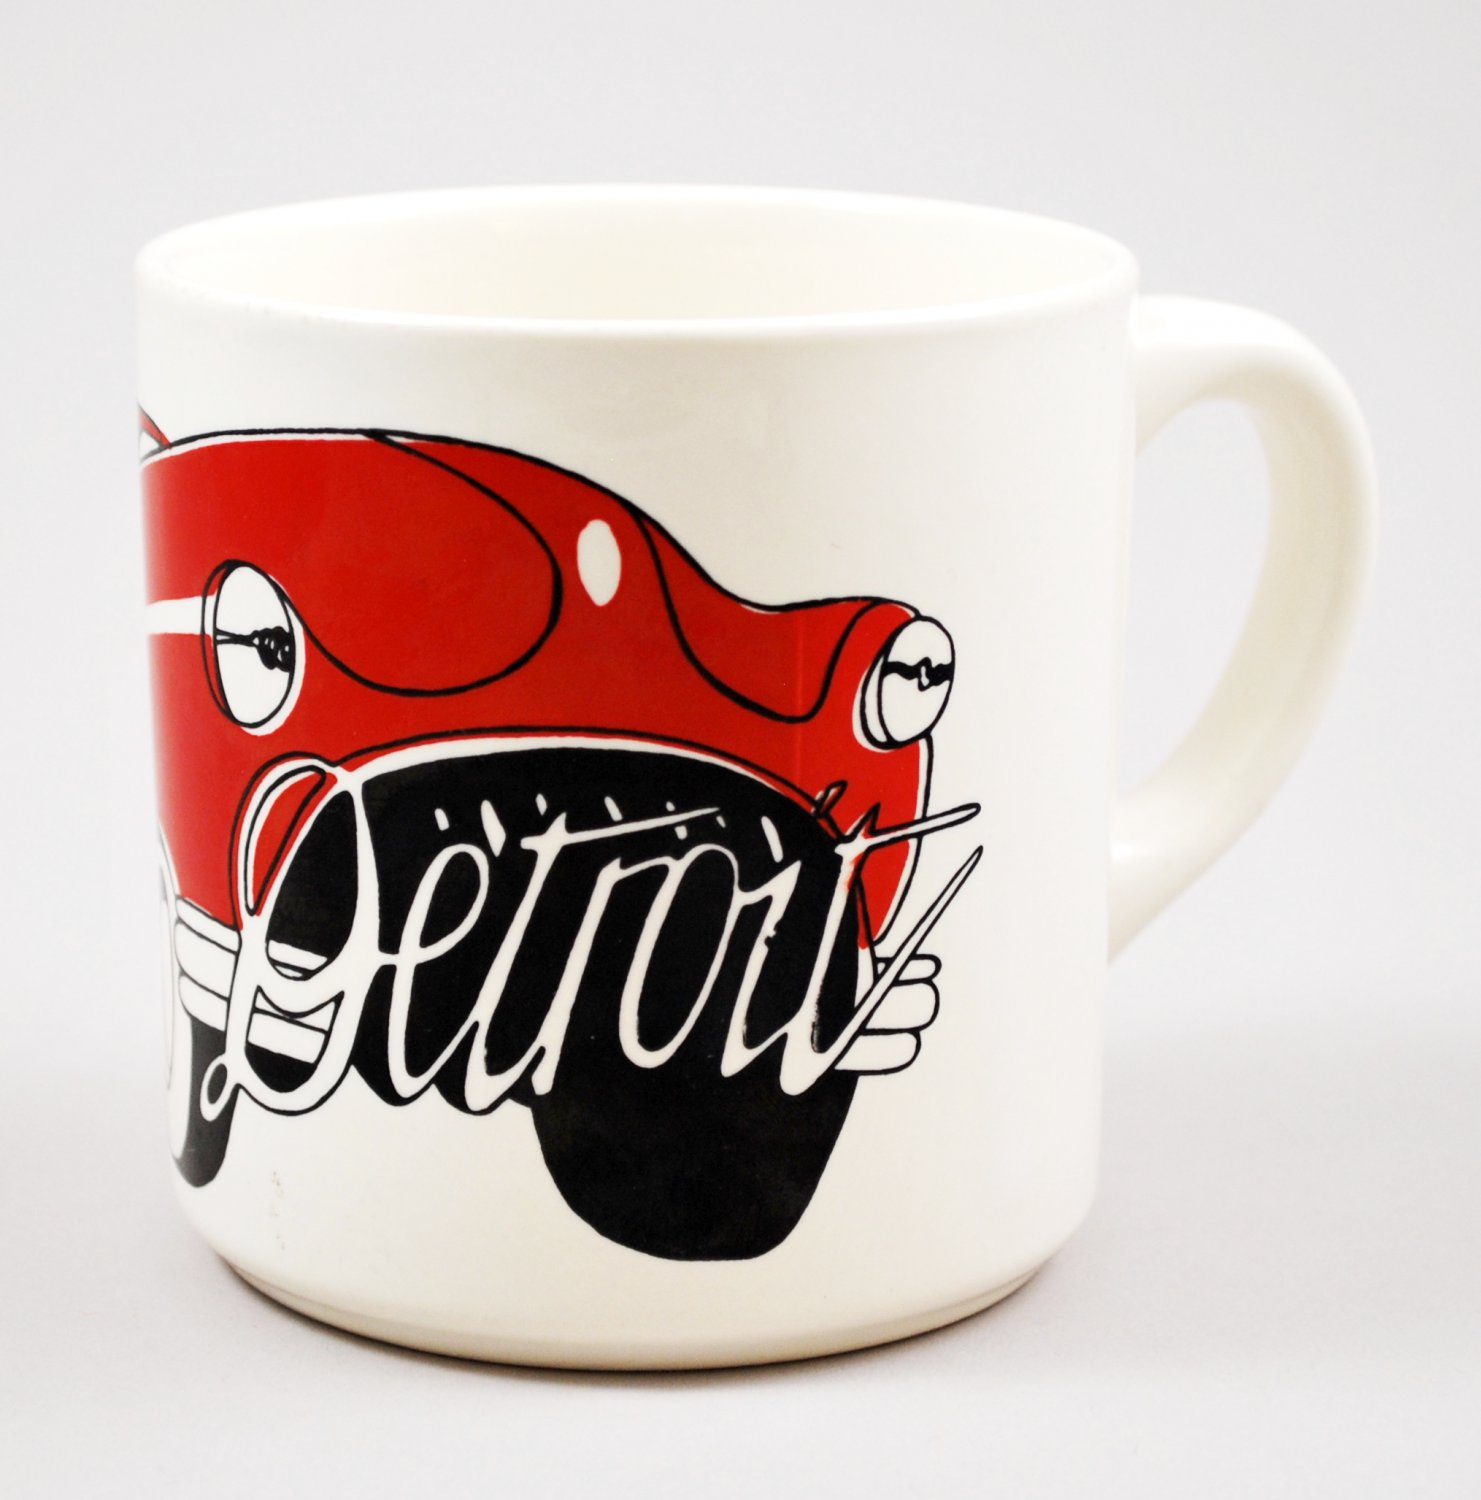 Vintage Detroit Red Automobile Car Ceramic Mug or Coffee Cup